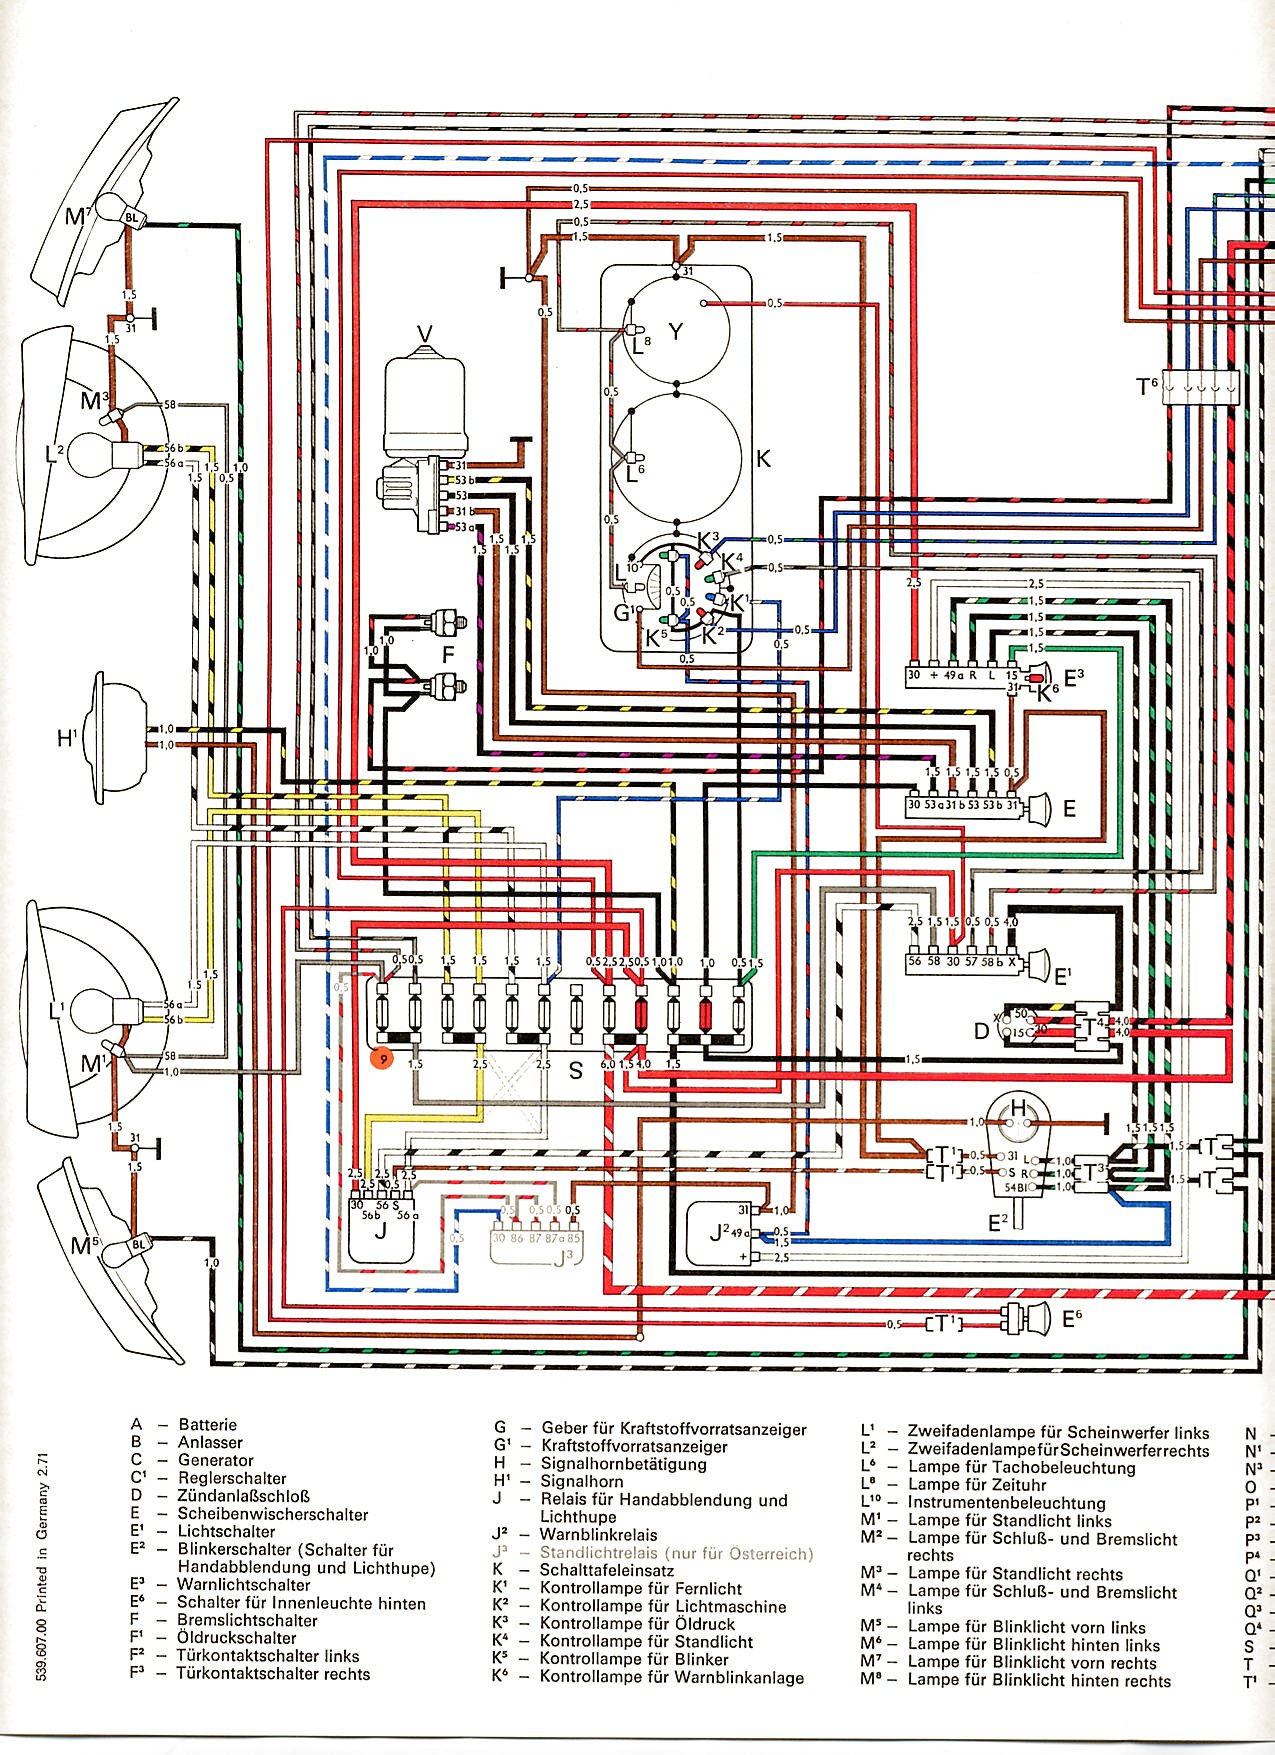 vintagebus com vw bus and other wiring diagrams rh vintagebus com 1976 vw beetle wiring diagram 1976 vw bus wiring diagram